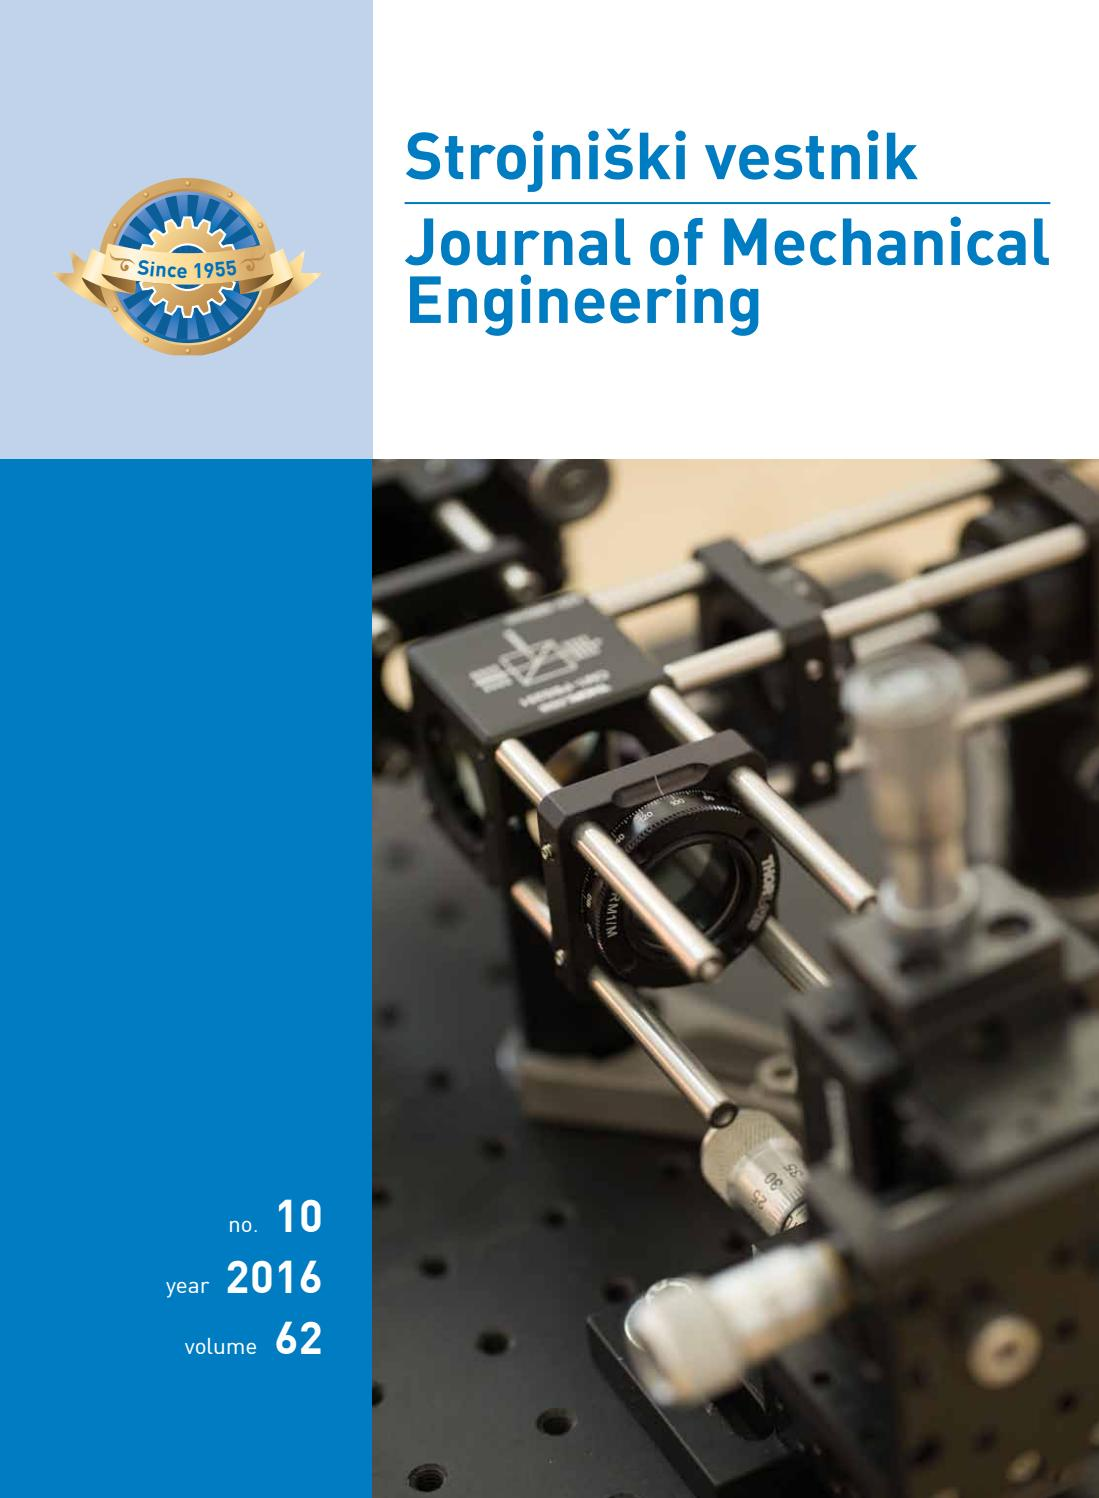 Journal of Mechanical Engineering 2016 10 by Darko Svetak